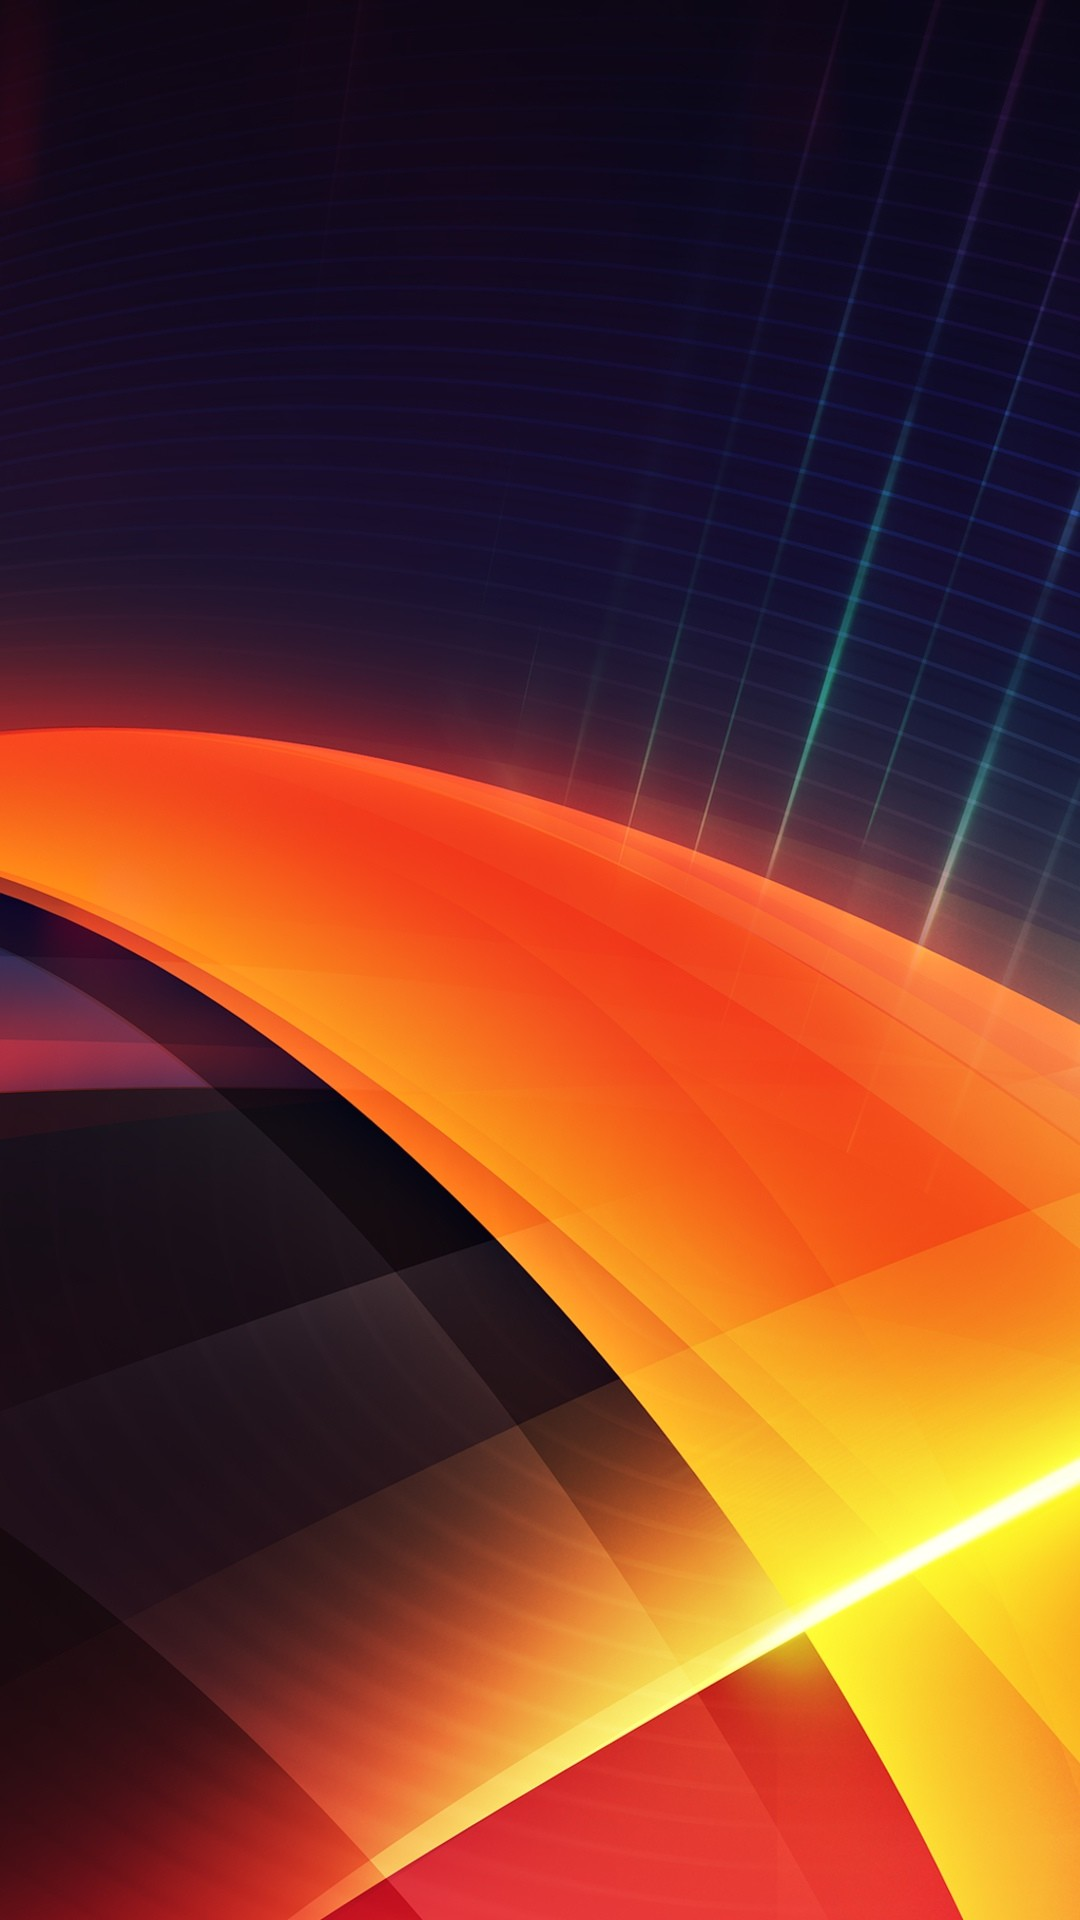 Abstract Orange Layers Android Wallpaper …